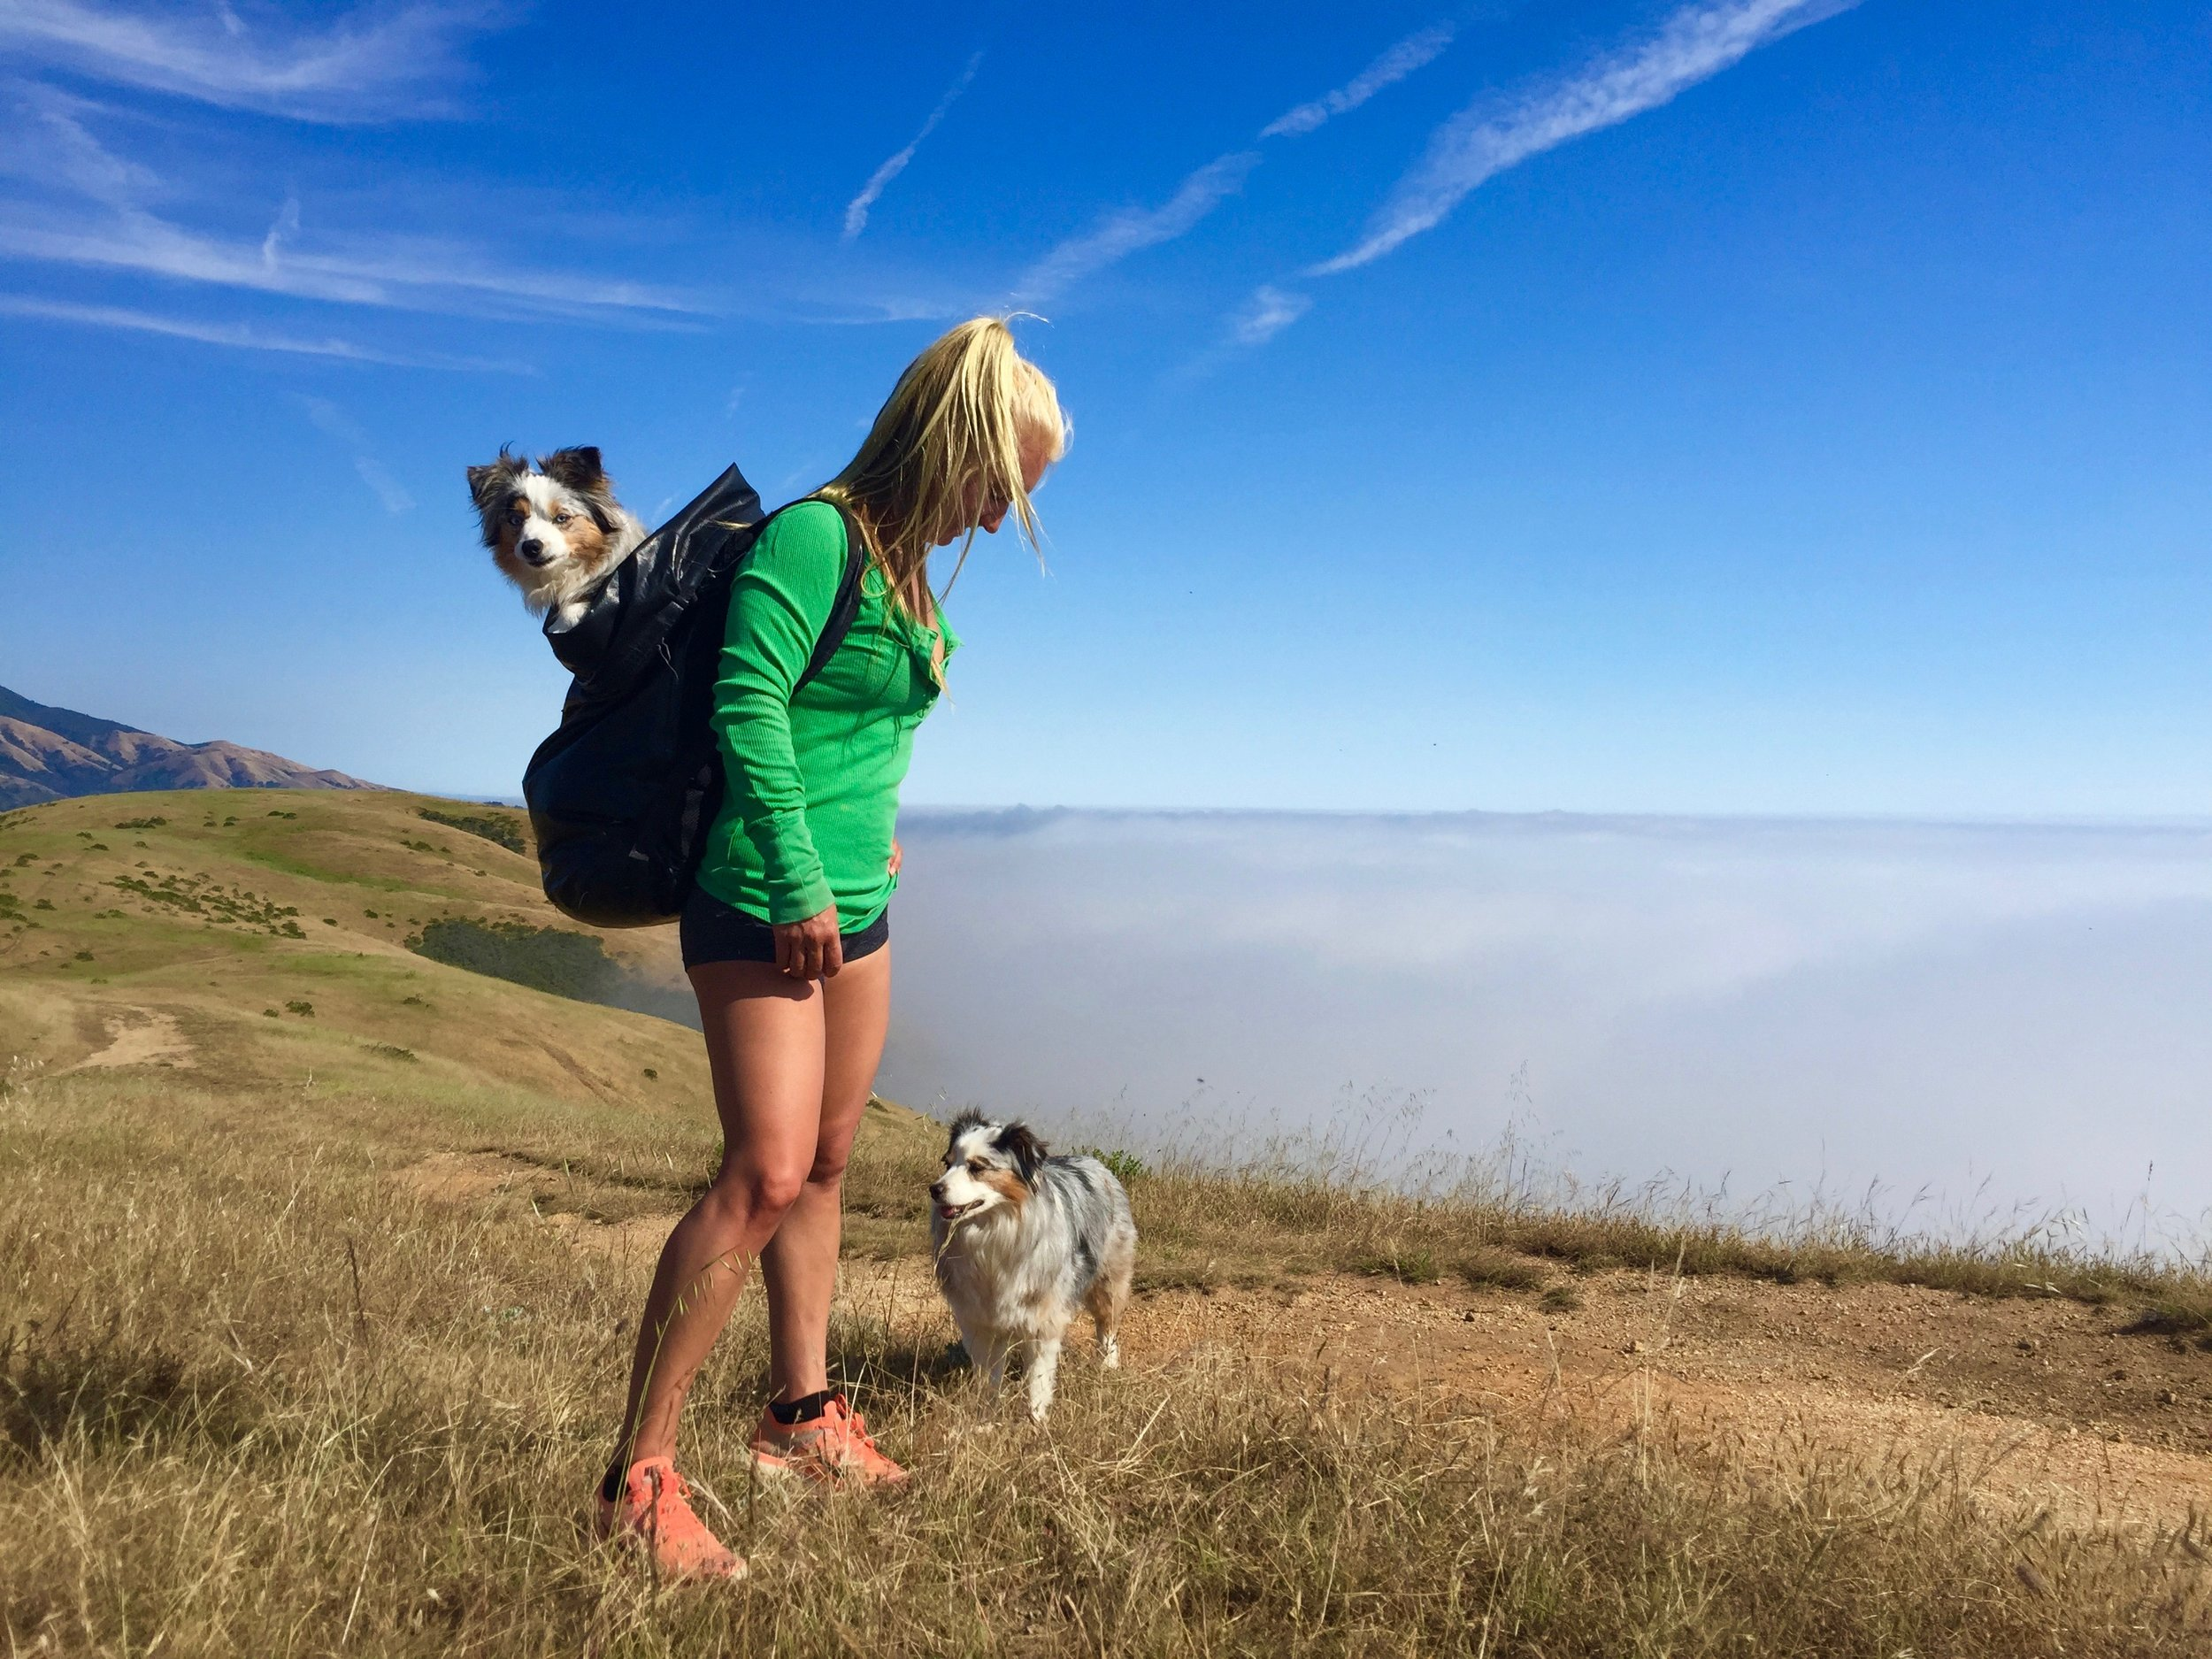 Off the beaten path in Big Sur with Kiwi and Fiji.